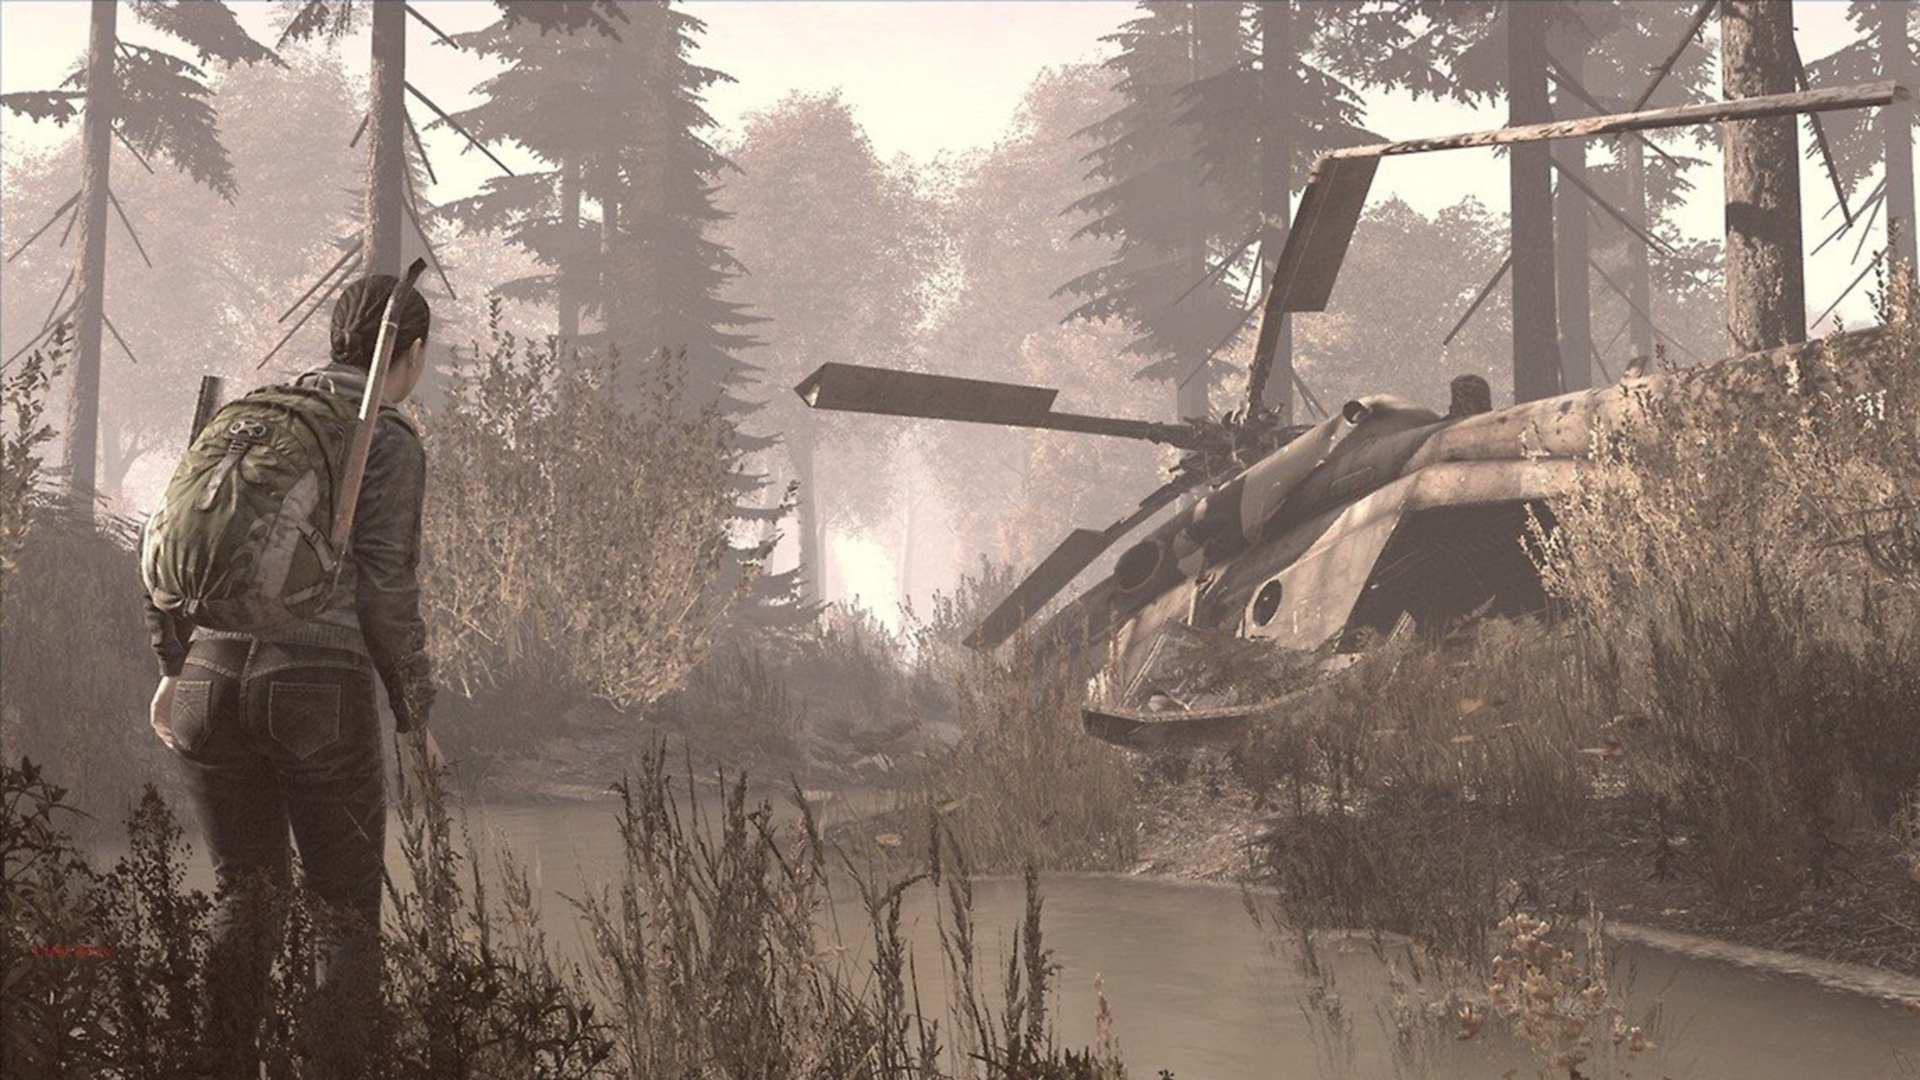 dayz-standalone-female-survivor-heli-crash-site-1920×1080-wallpaper-wpc5803962